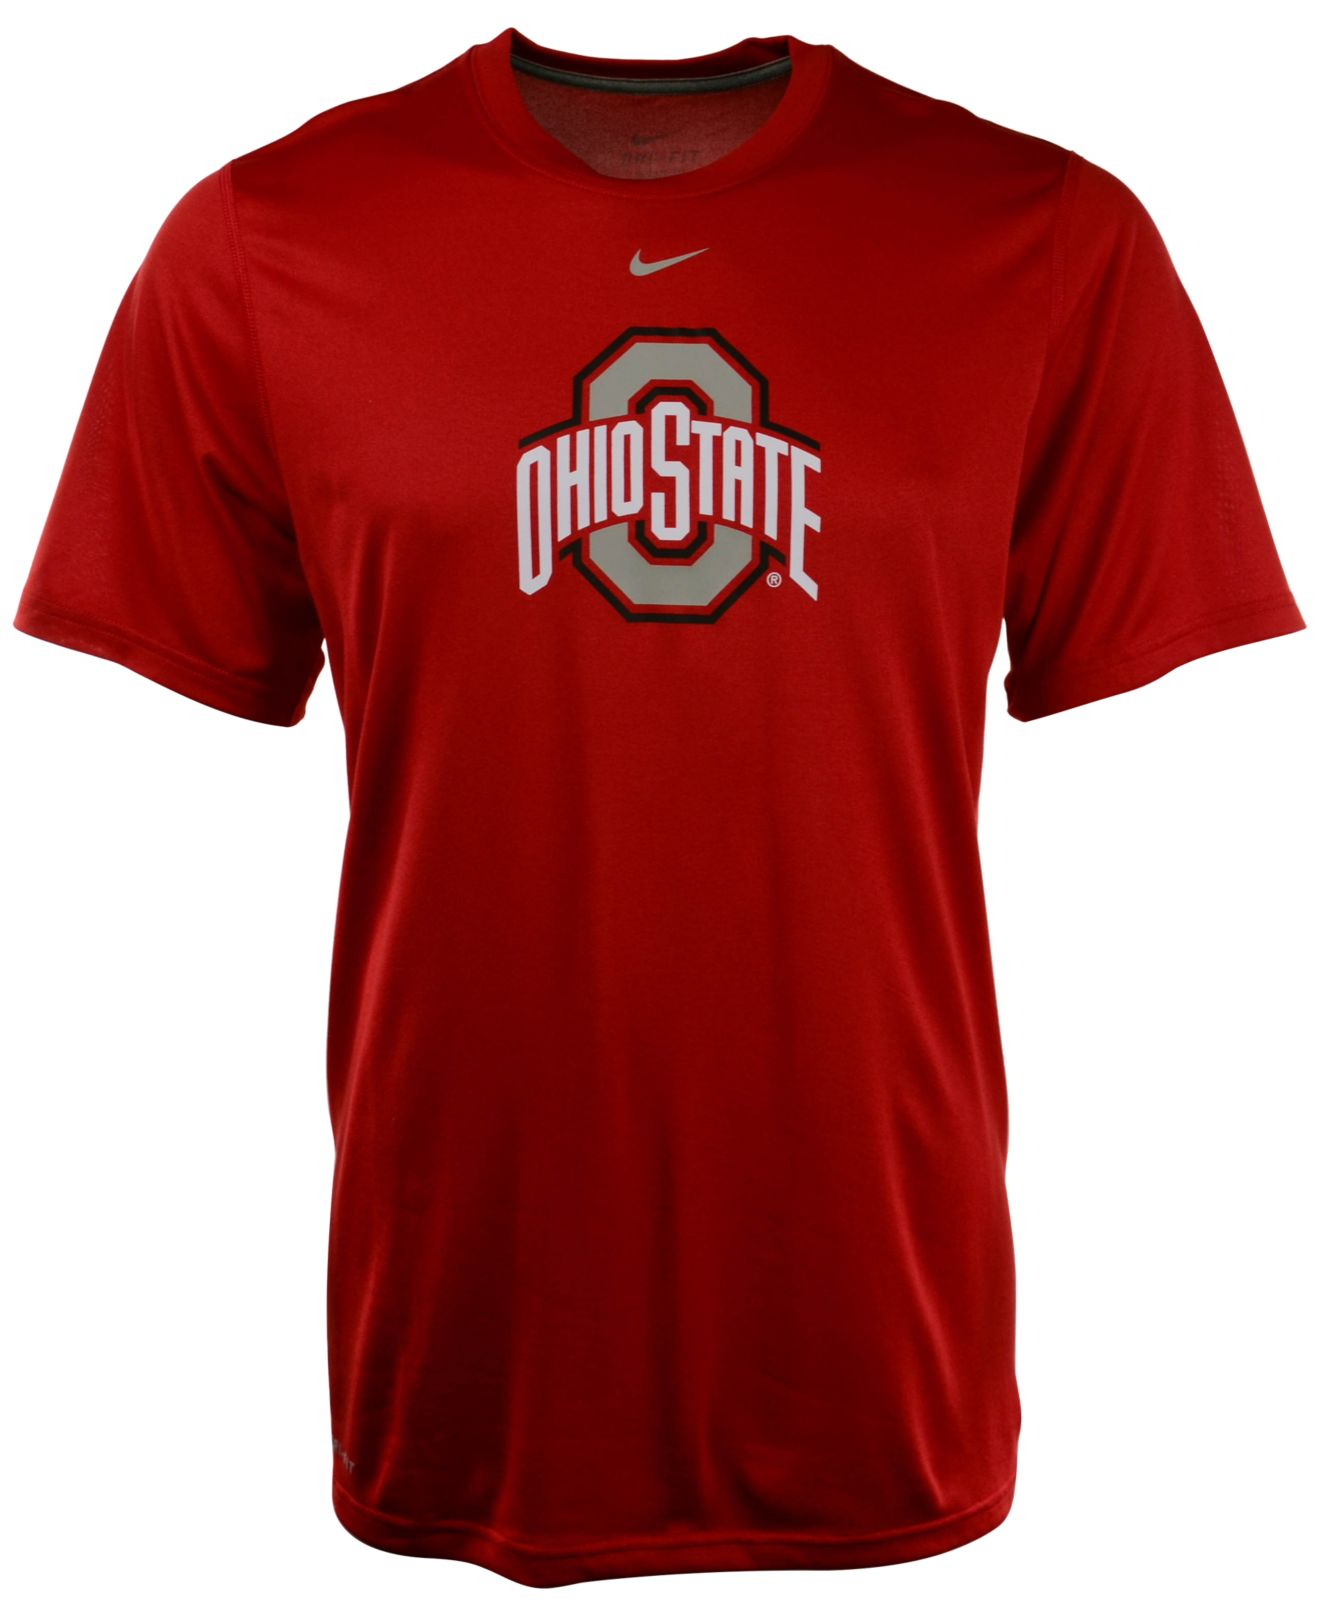 Nike men 39 s short sleeve ohio state buckeyes legend t shirt for Ohio state shirts mens